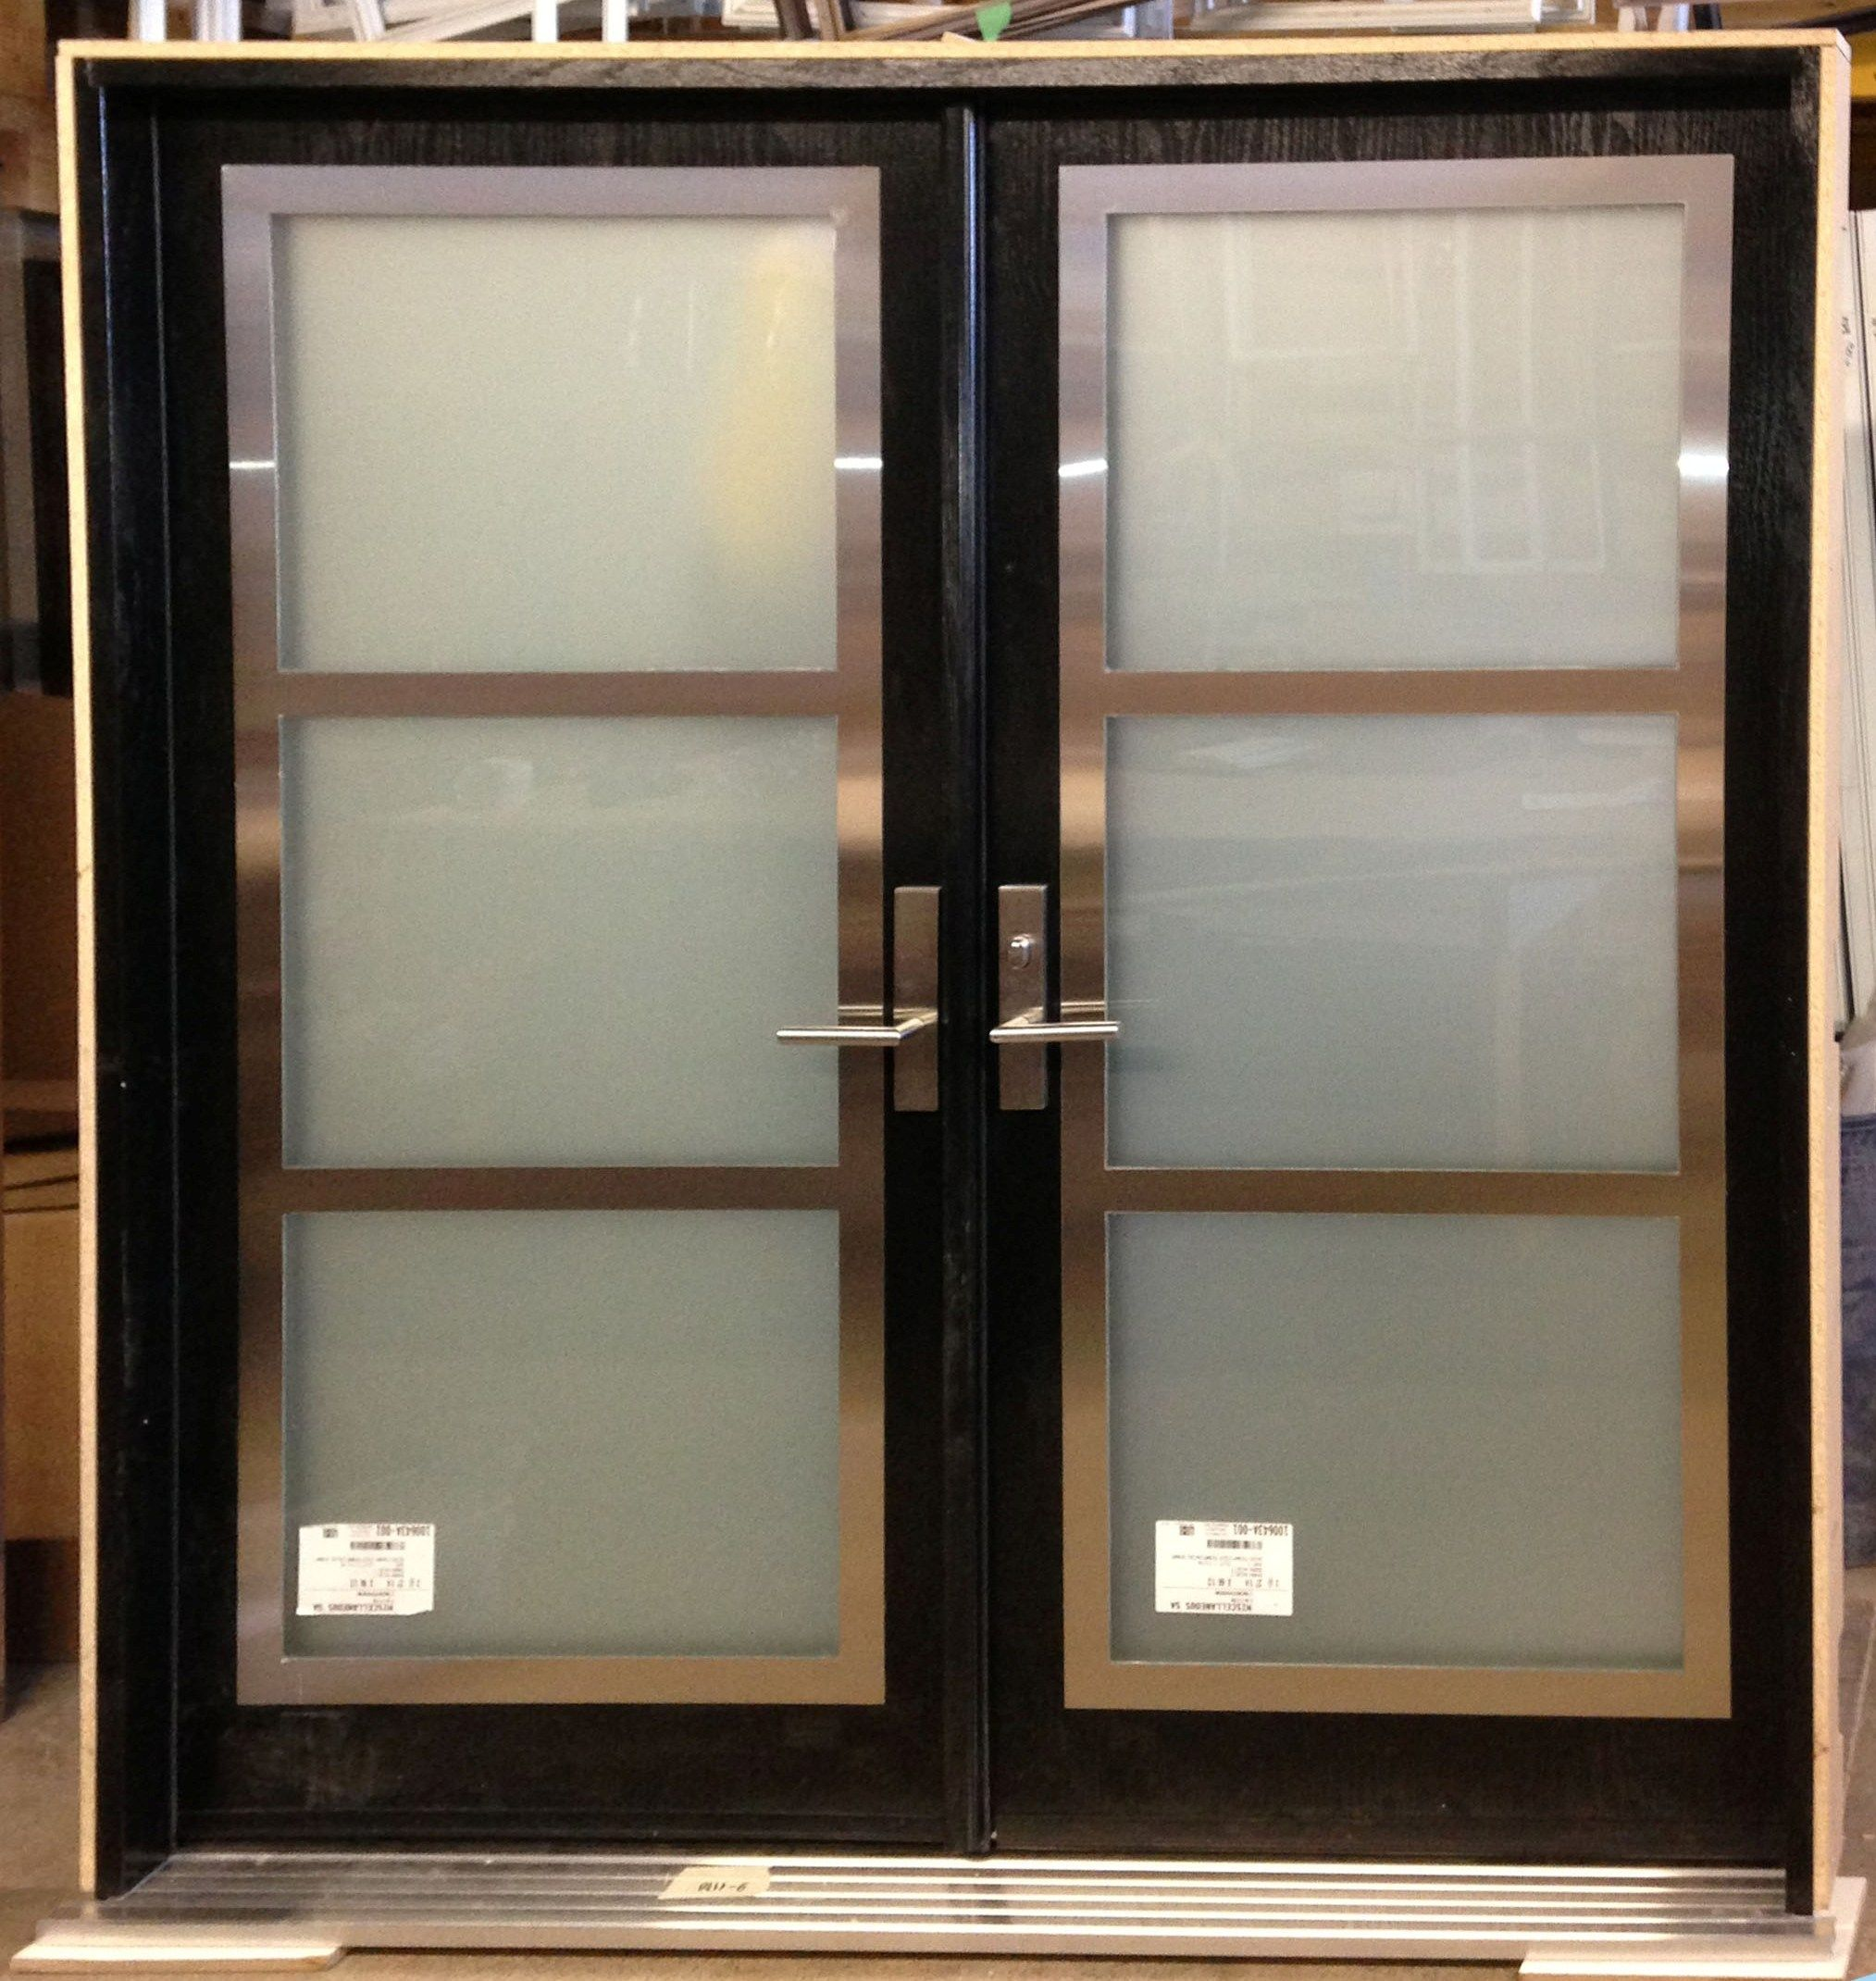 Double entry door with stainless steel frame on top of glass inserts double entry door with stainless steel frame on top of glass inserts from thermoluxe contemporary collection eventshaper